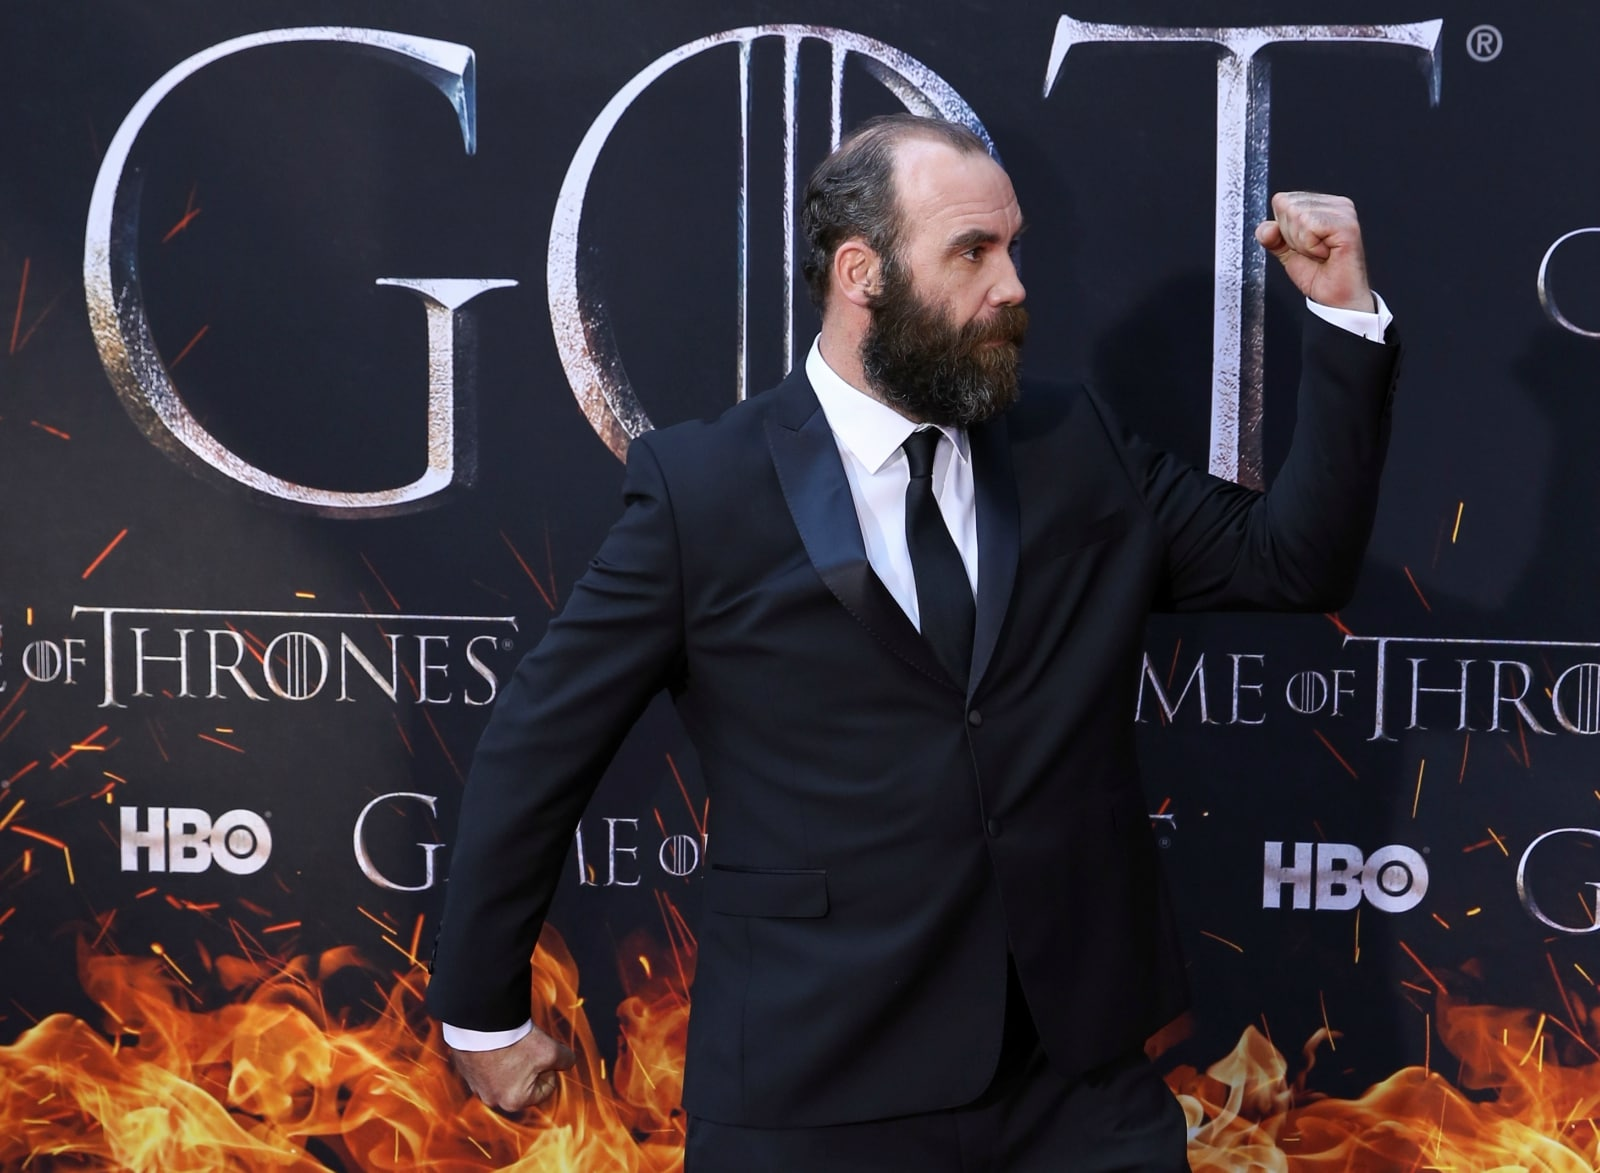 Rory McCann, aka Sandor Clegane, arrives for the premiere of the final season of